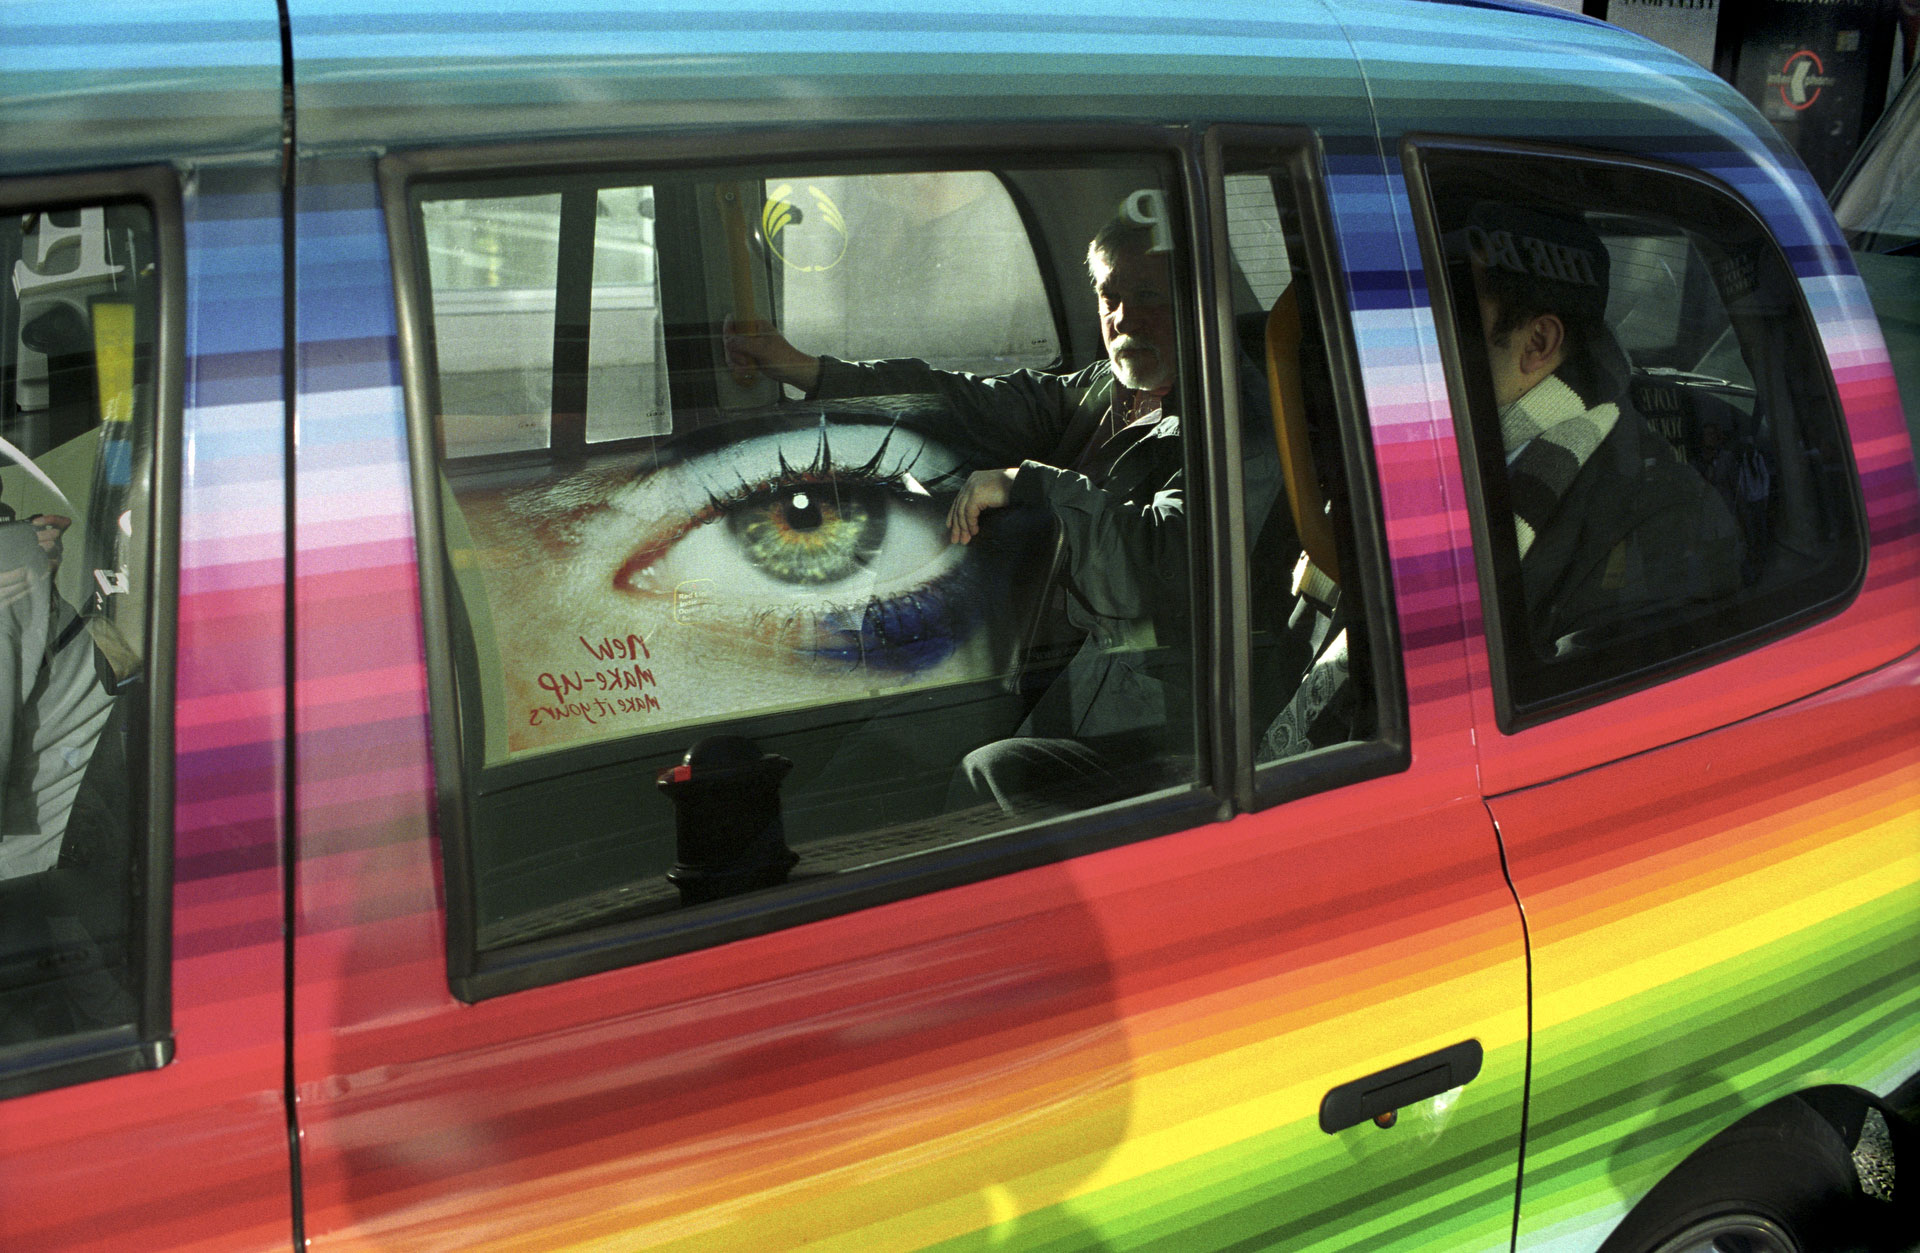 Nick Turpin Street Taxi Eye